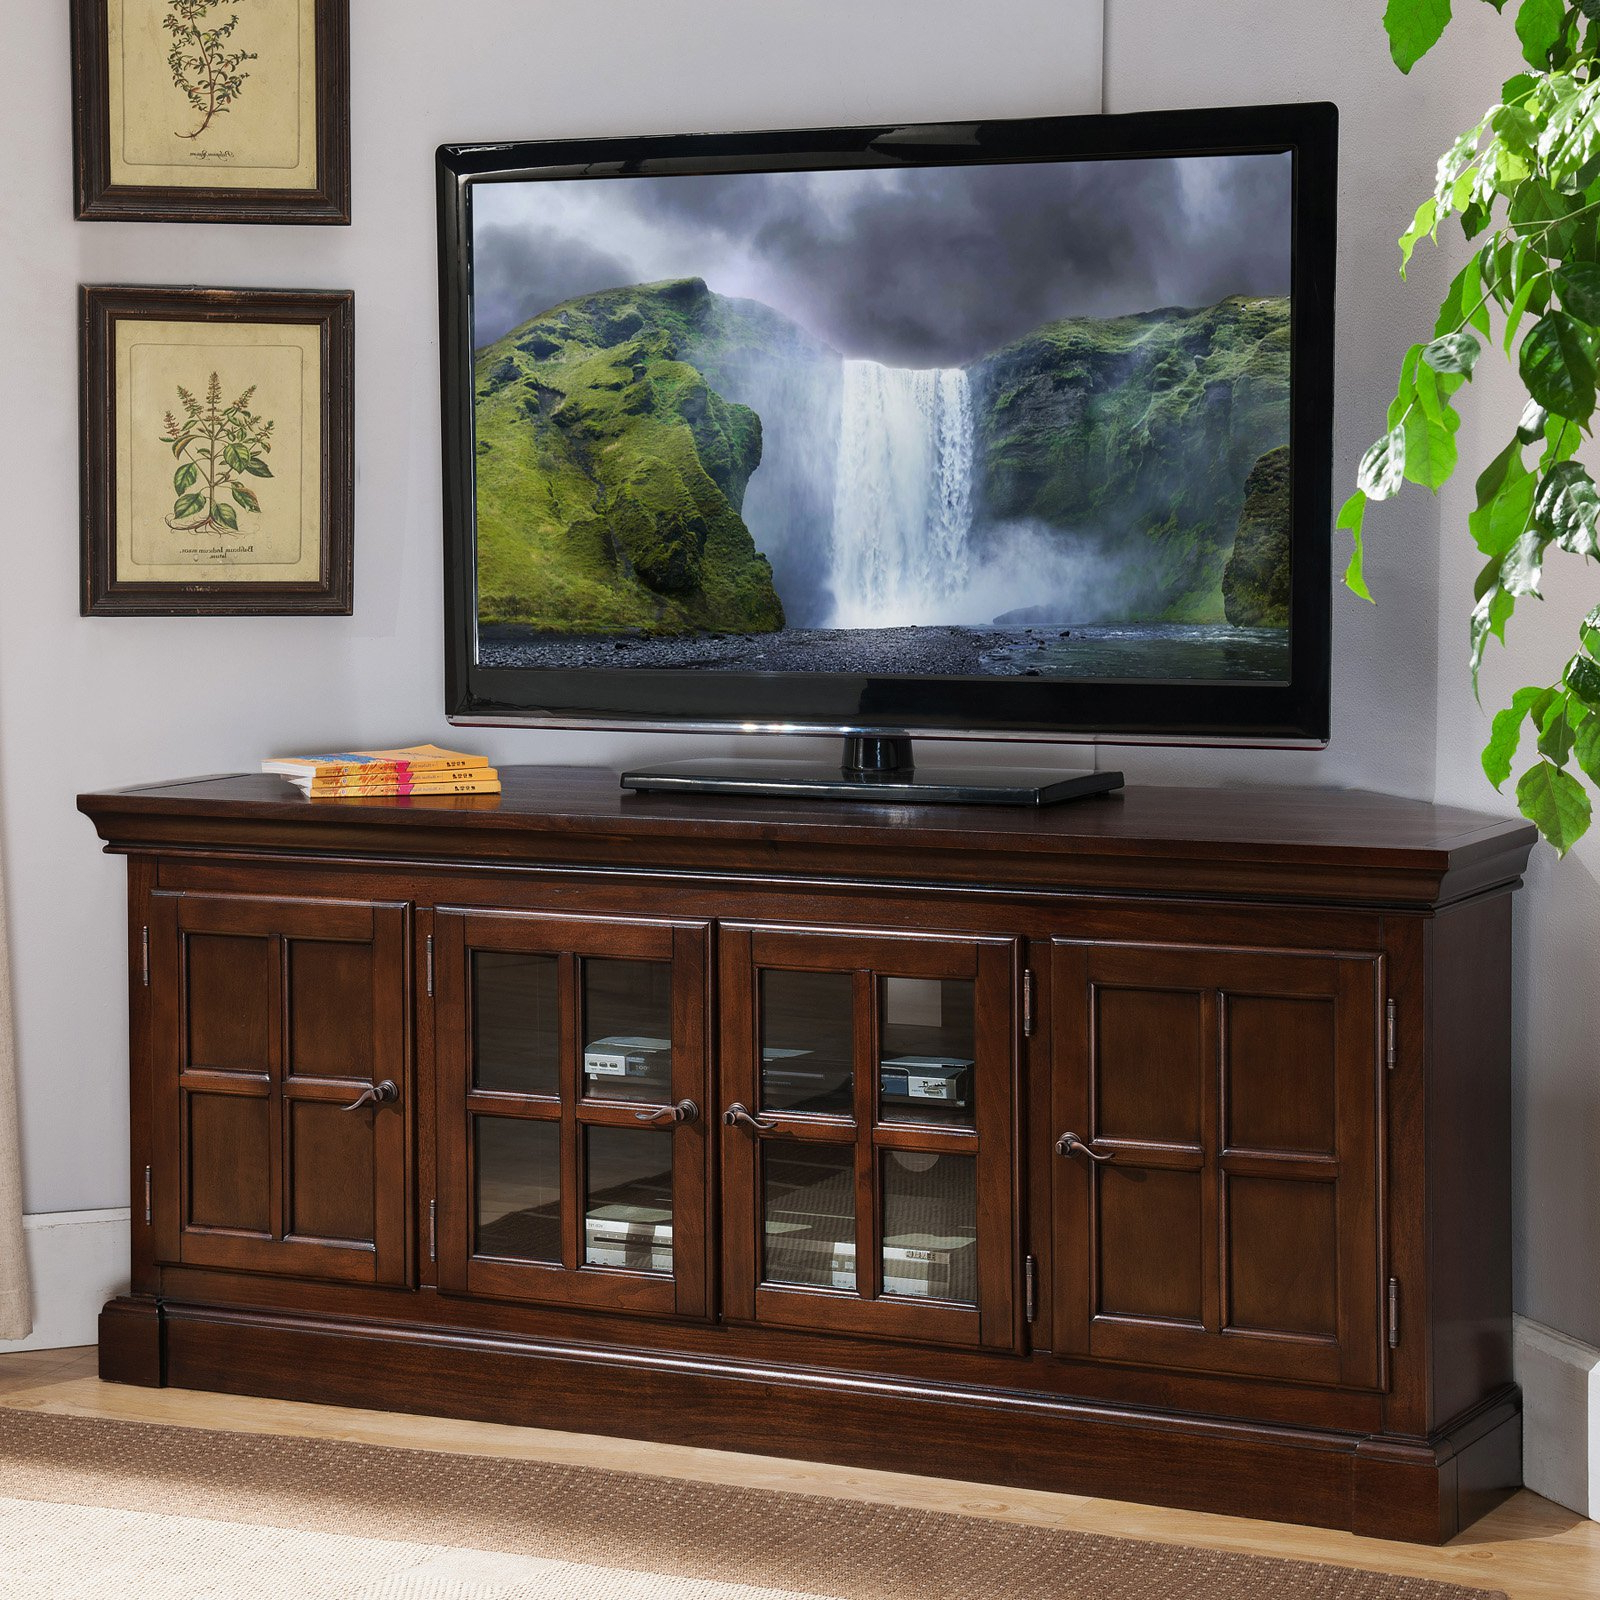 """Most Current Leick Home Bella Maison 56"""" Corner Tv Stand For Tv's Up To Within Totally Tv Stands For Tvs Up To 65"""" (View 11 of 25)"""